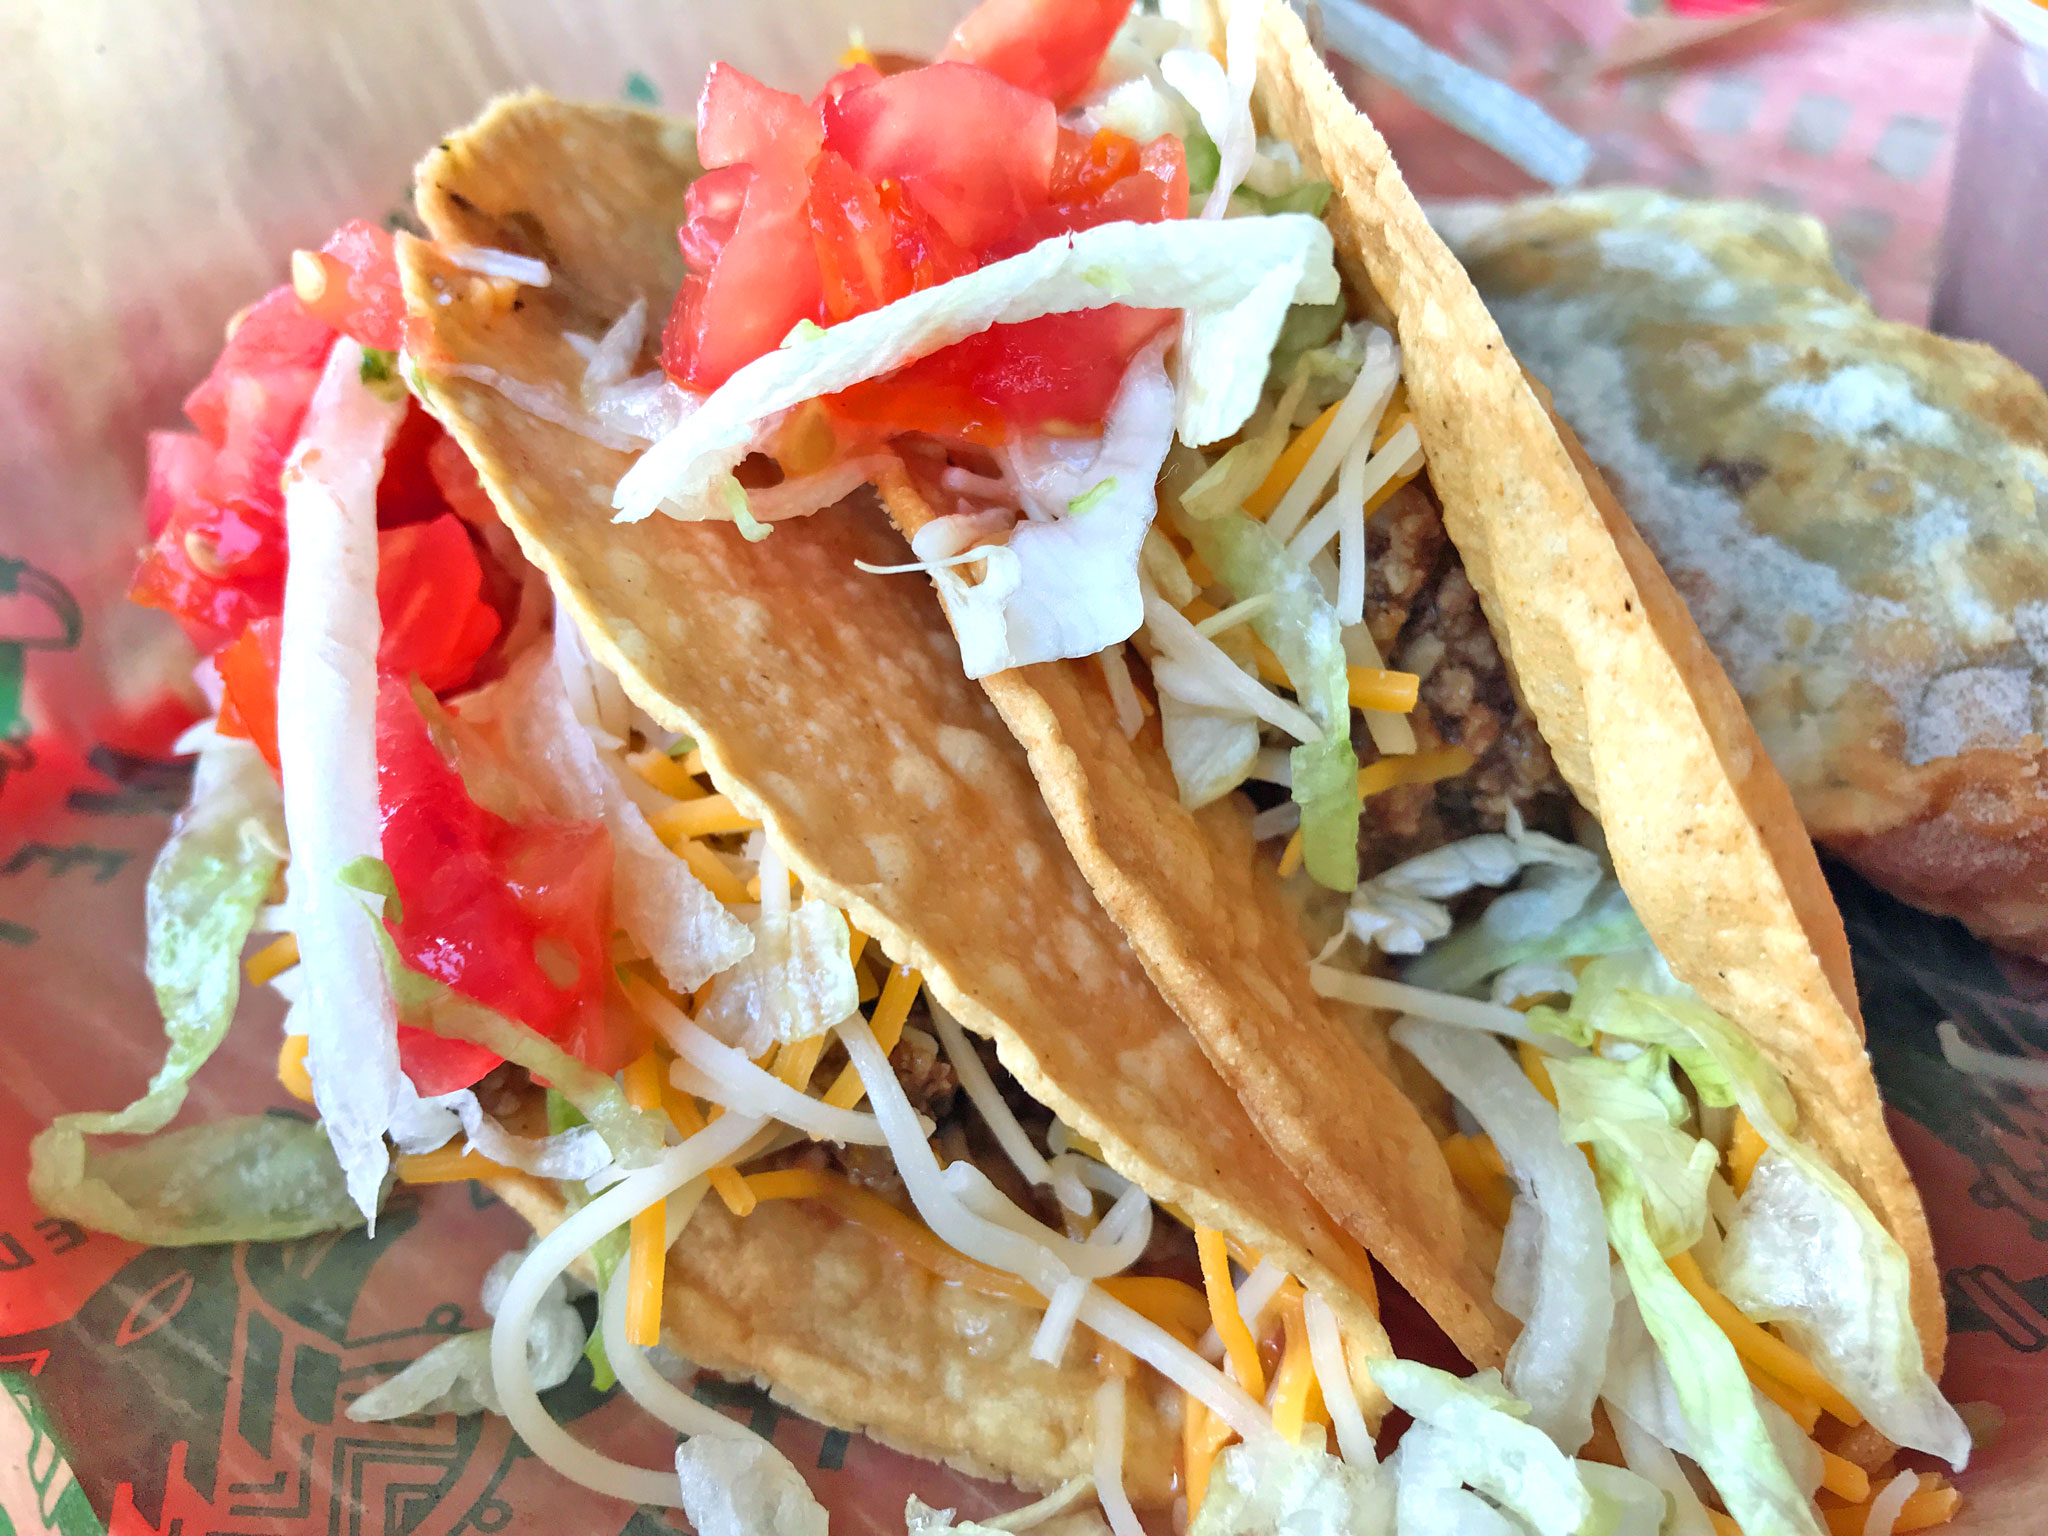 Crisp Taco - Corn Tortilla with Ground Beef, Lettuce, Cheese, Tomatoes